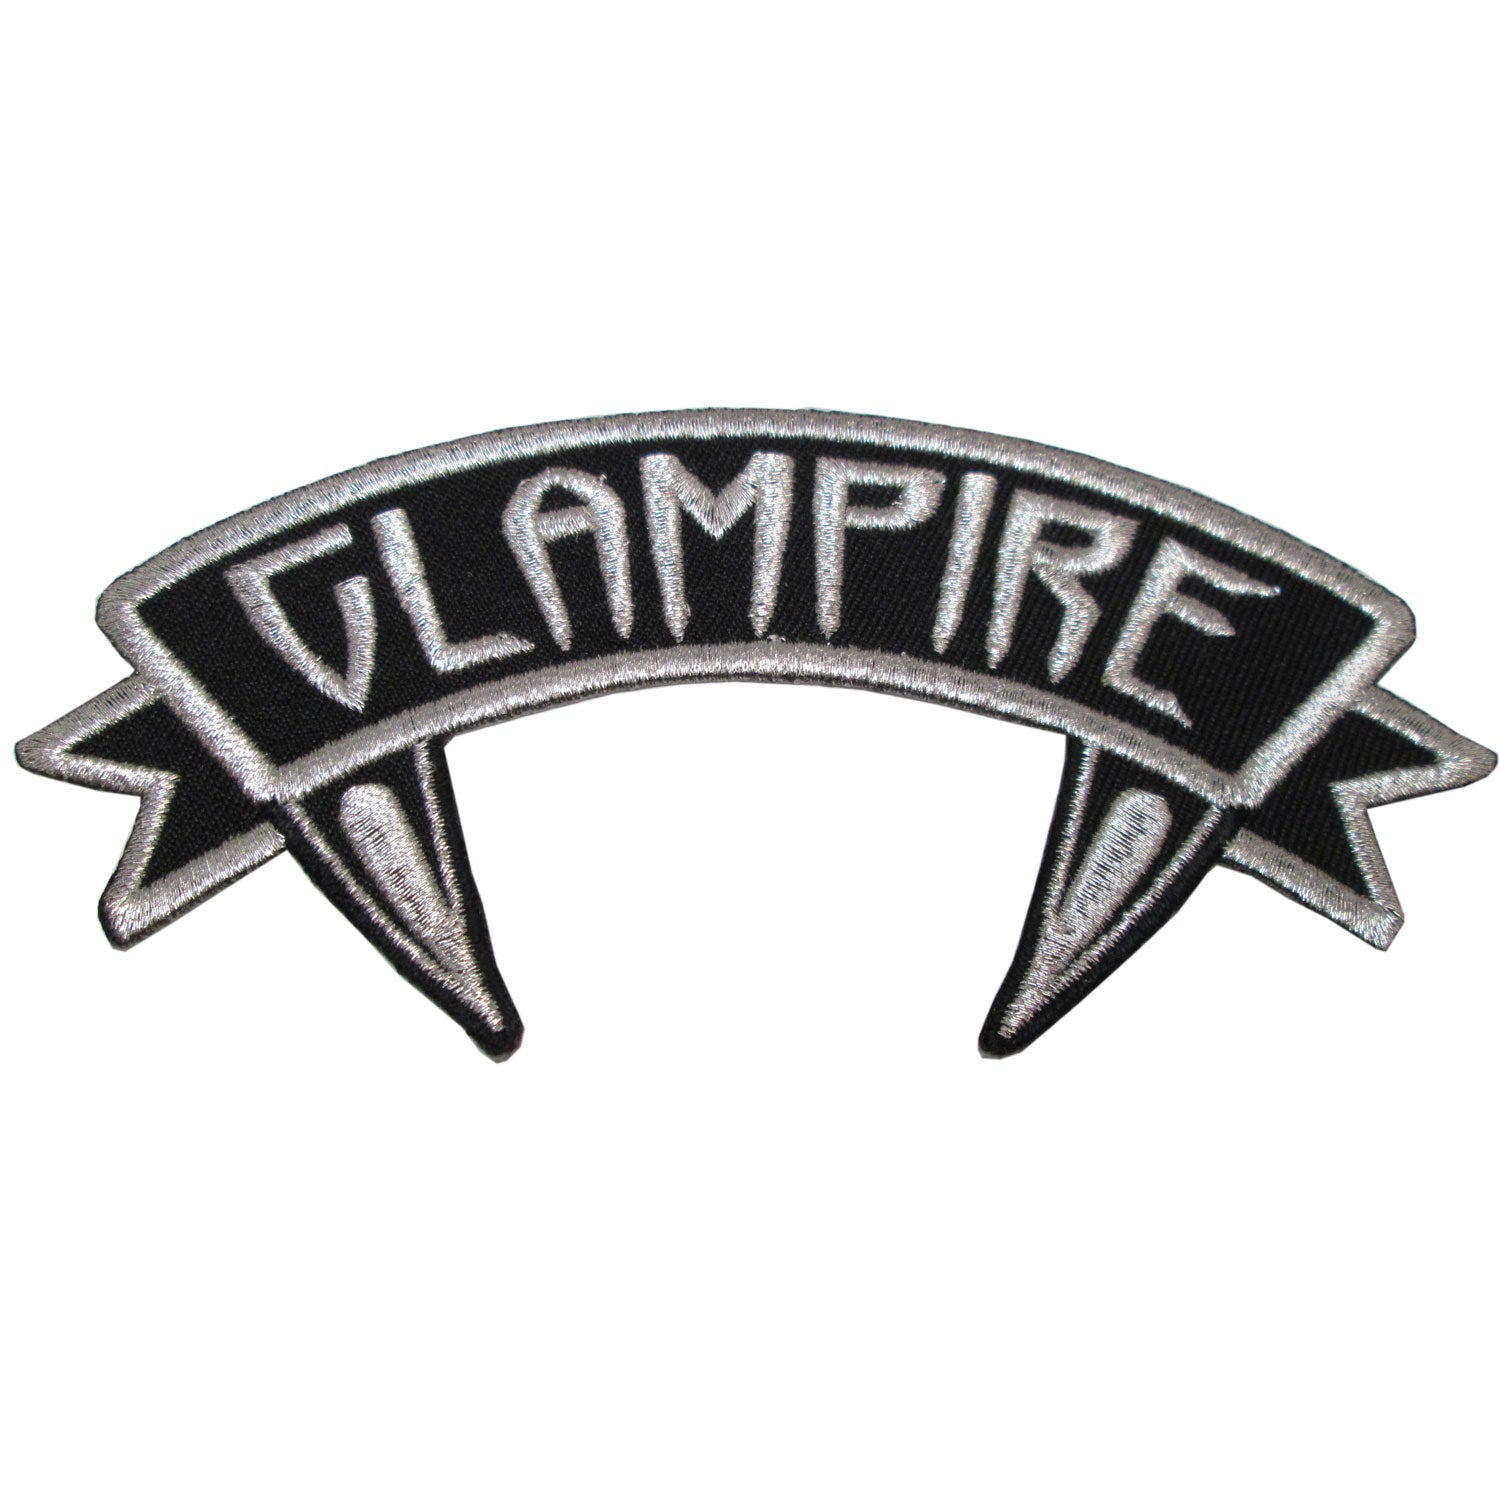 Arch Glampire Patch